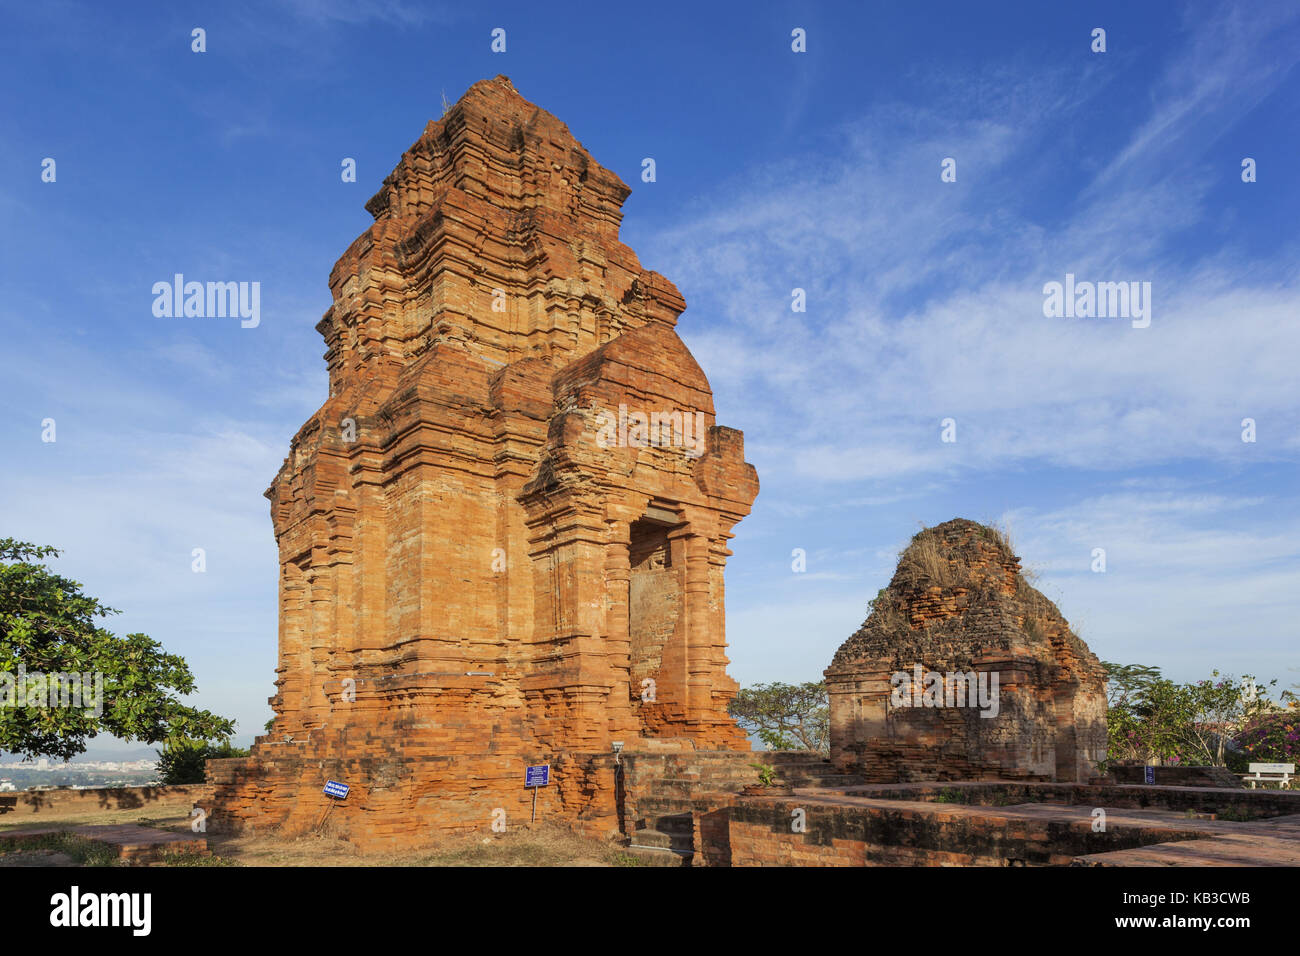 Vietnam, Mui Ne, cham, tour poshanu cham thap, Photo Stock